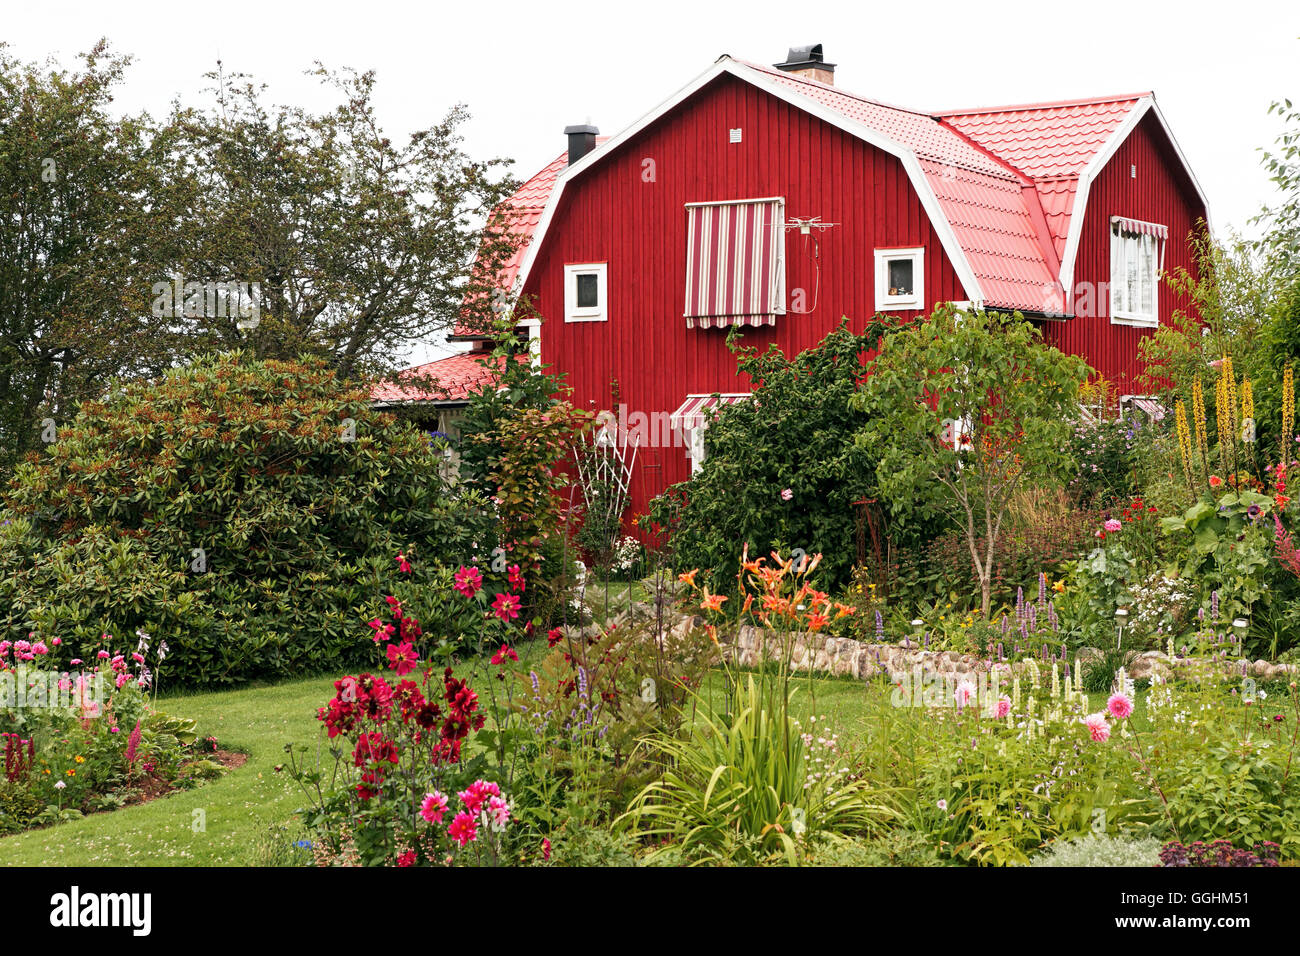 Garden and typical house near Borensberg, Sweden - Stock Image